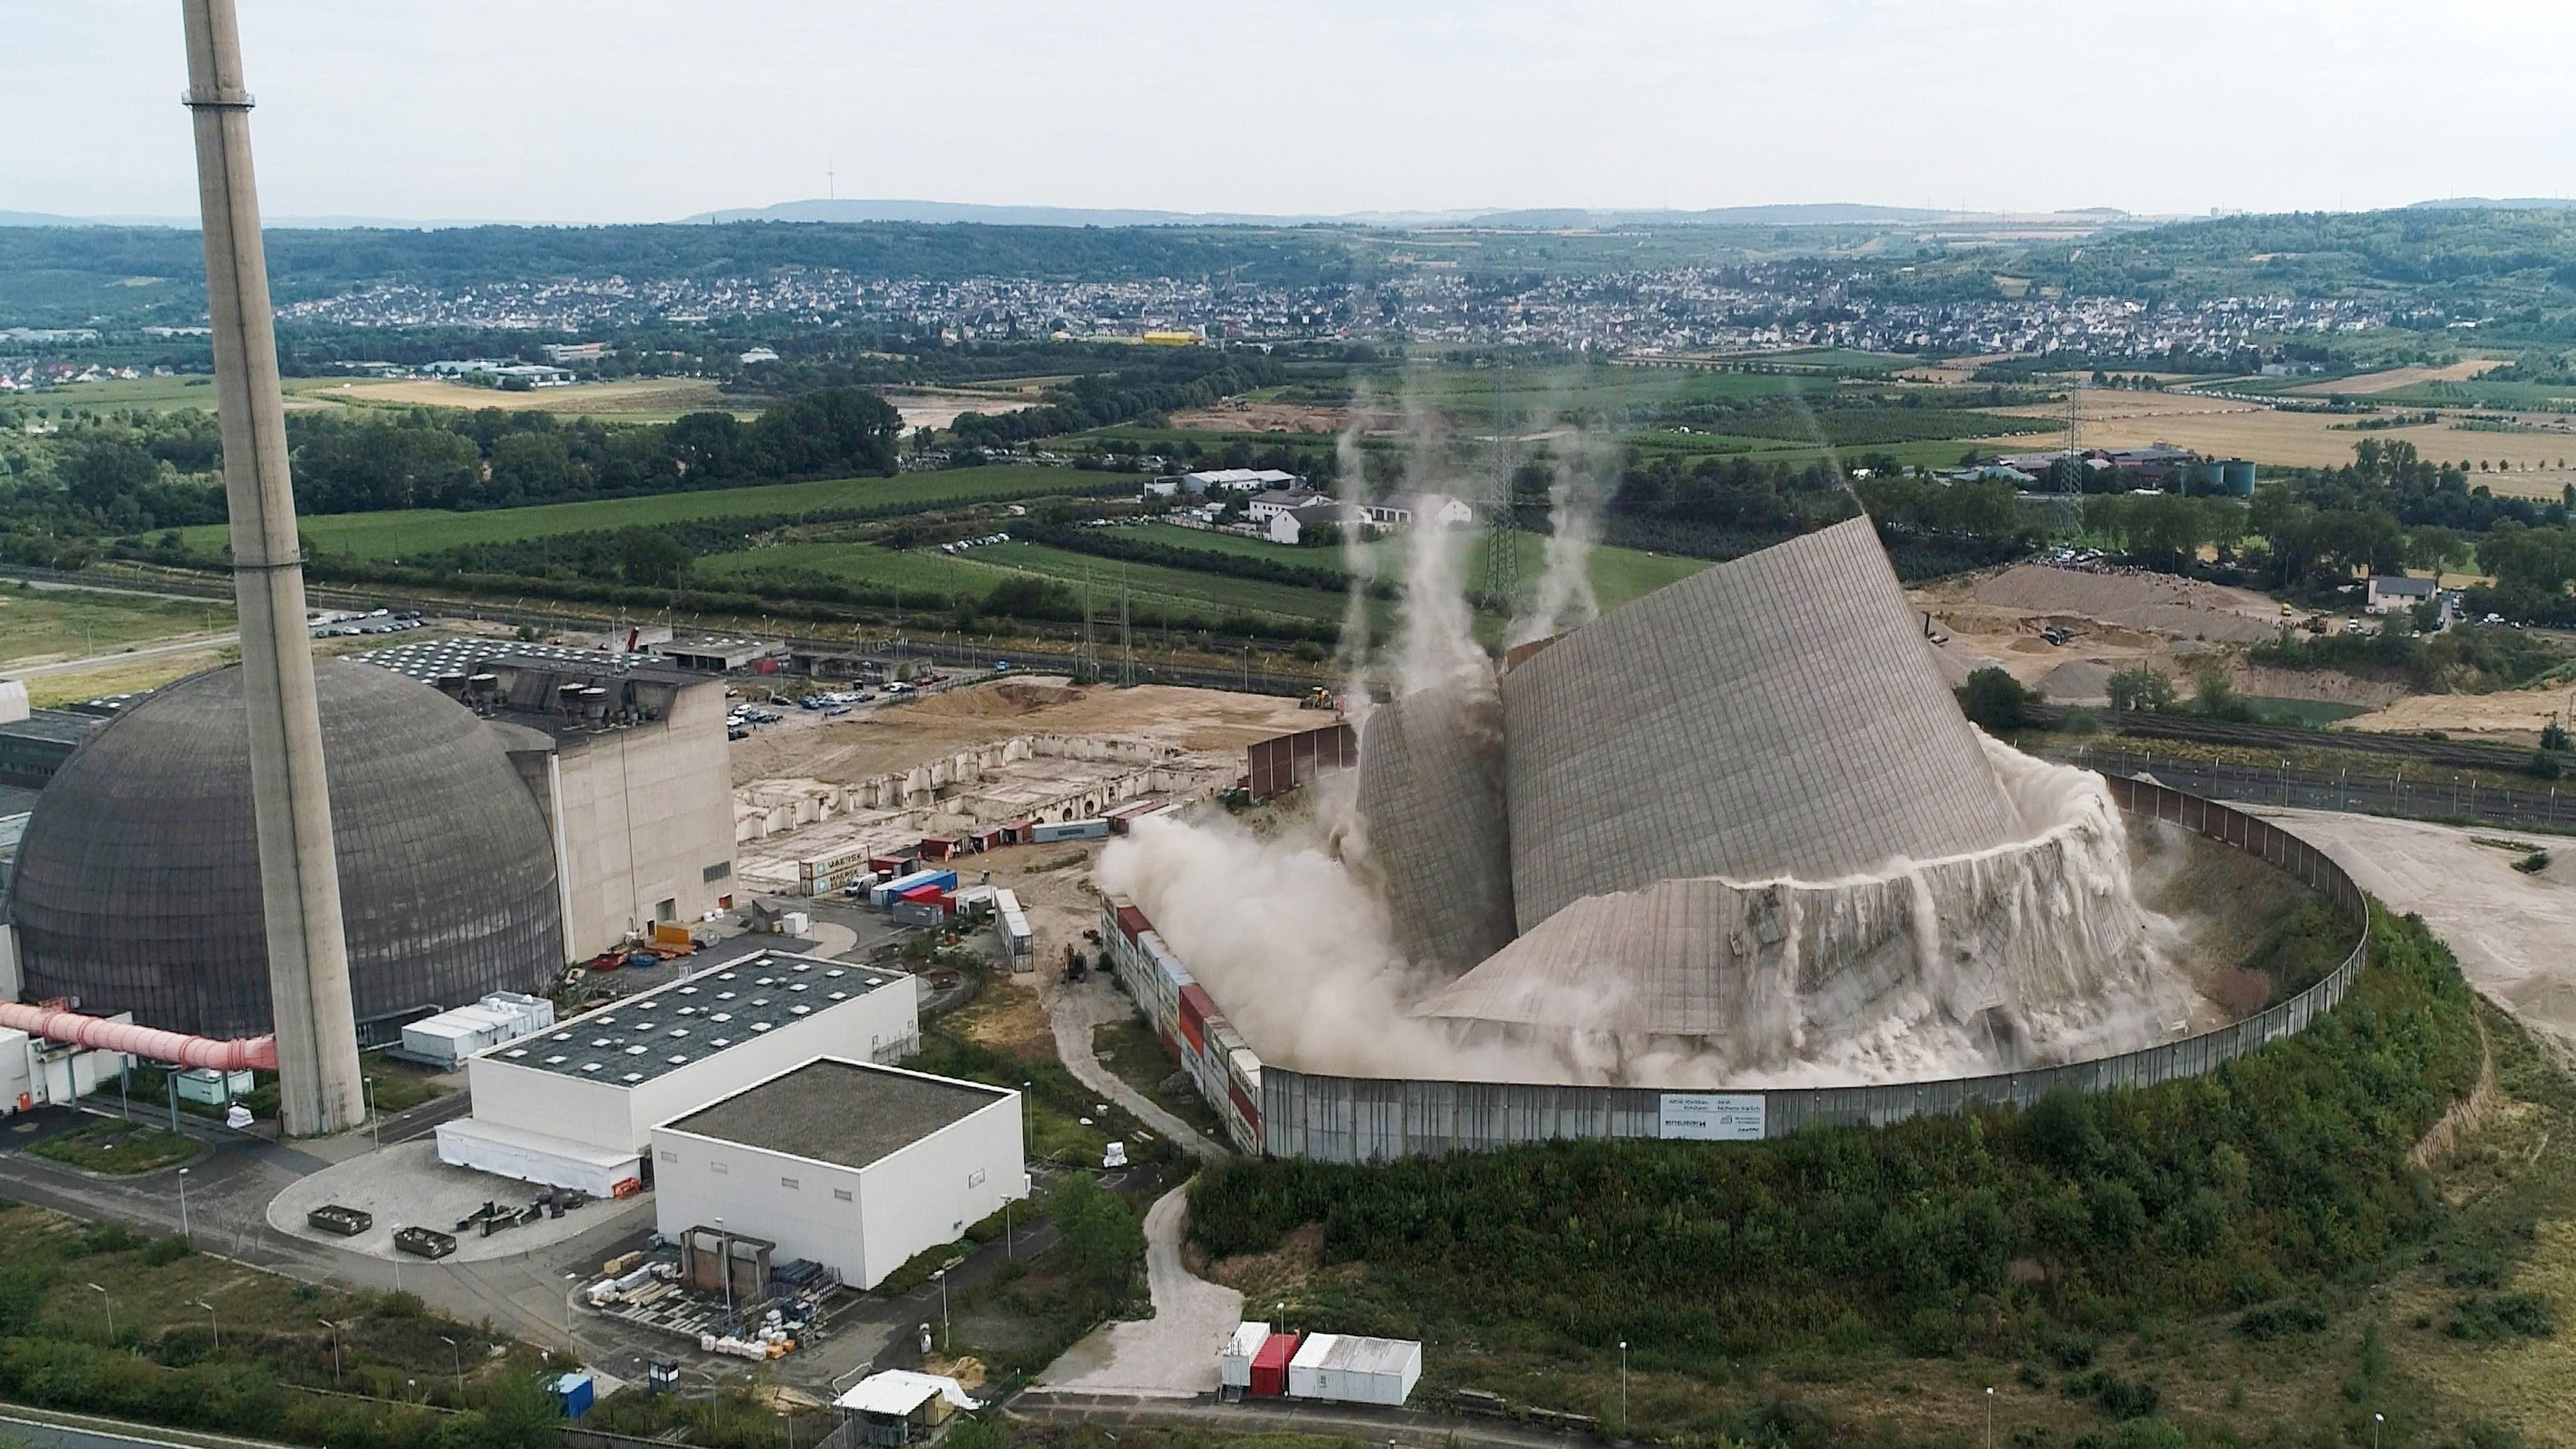 How to demolish a nuclear power plant without blowing it up